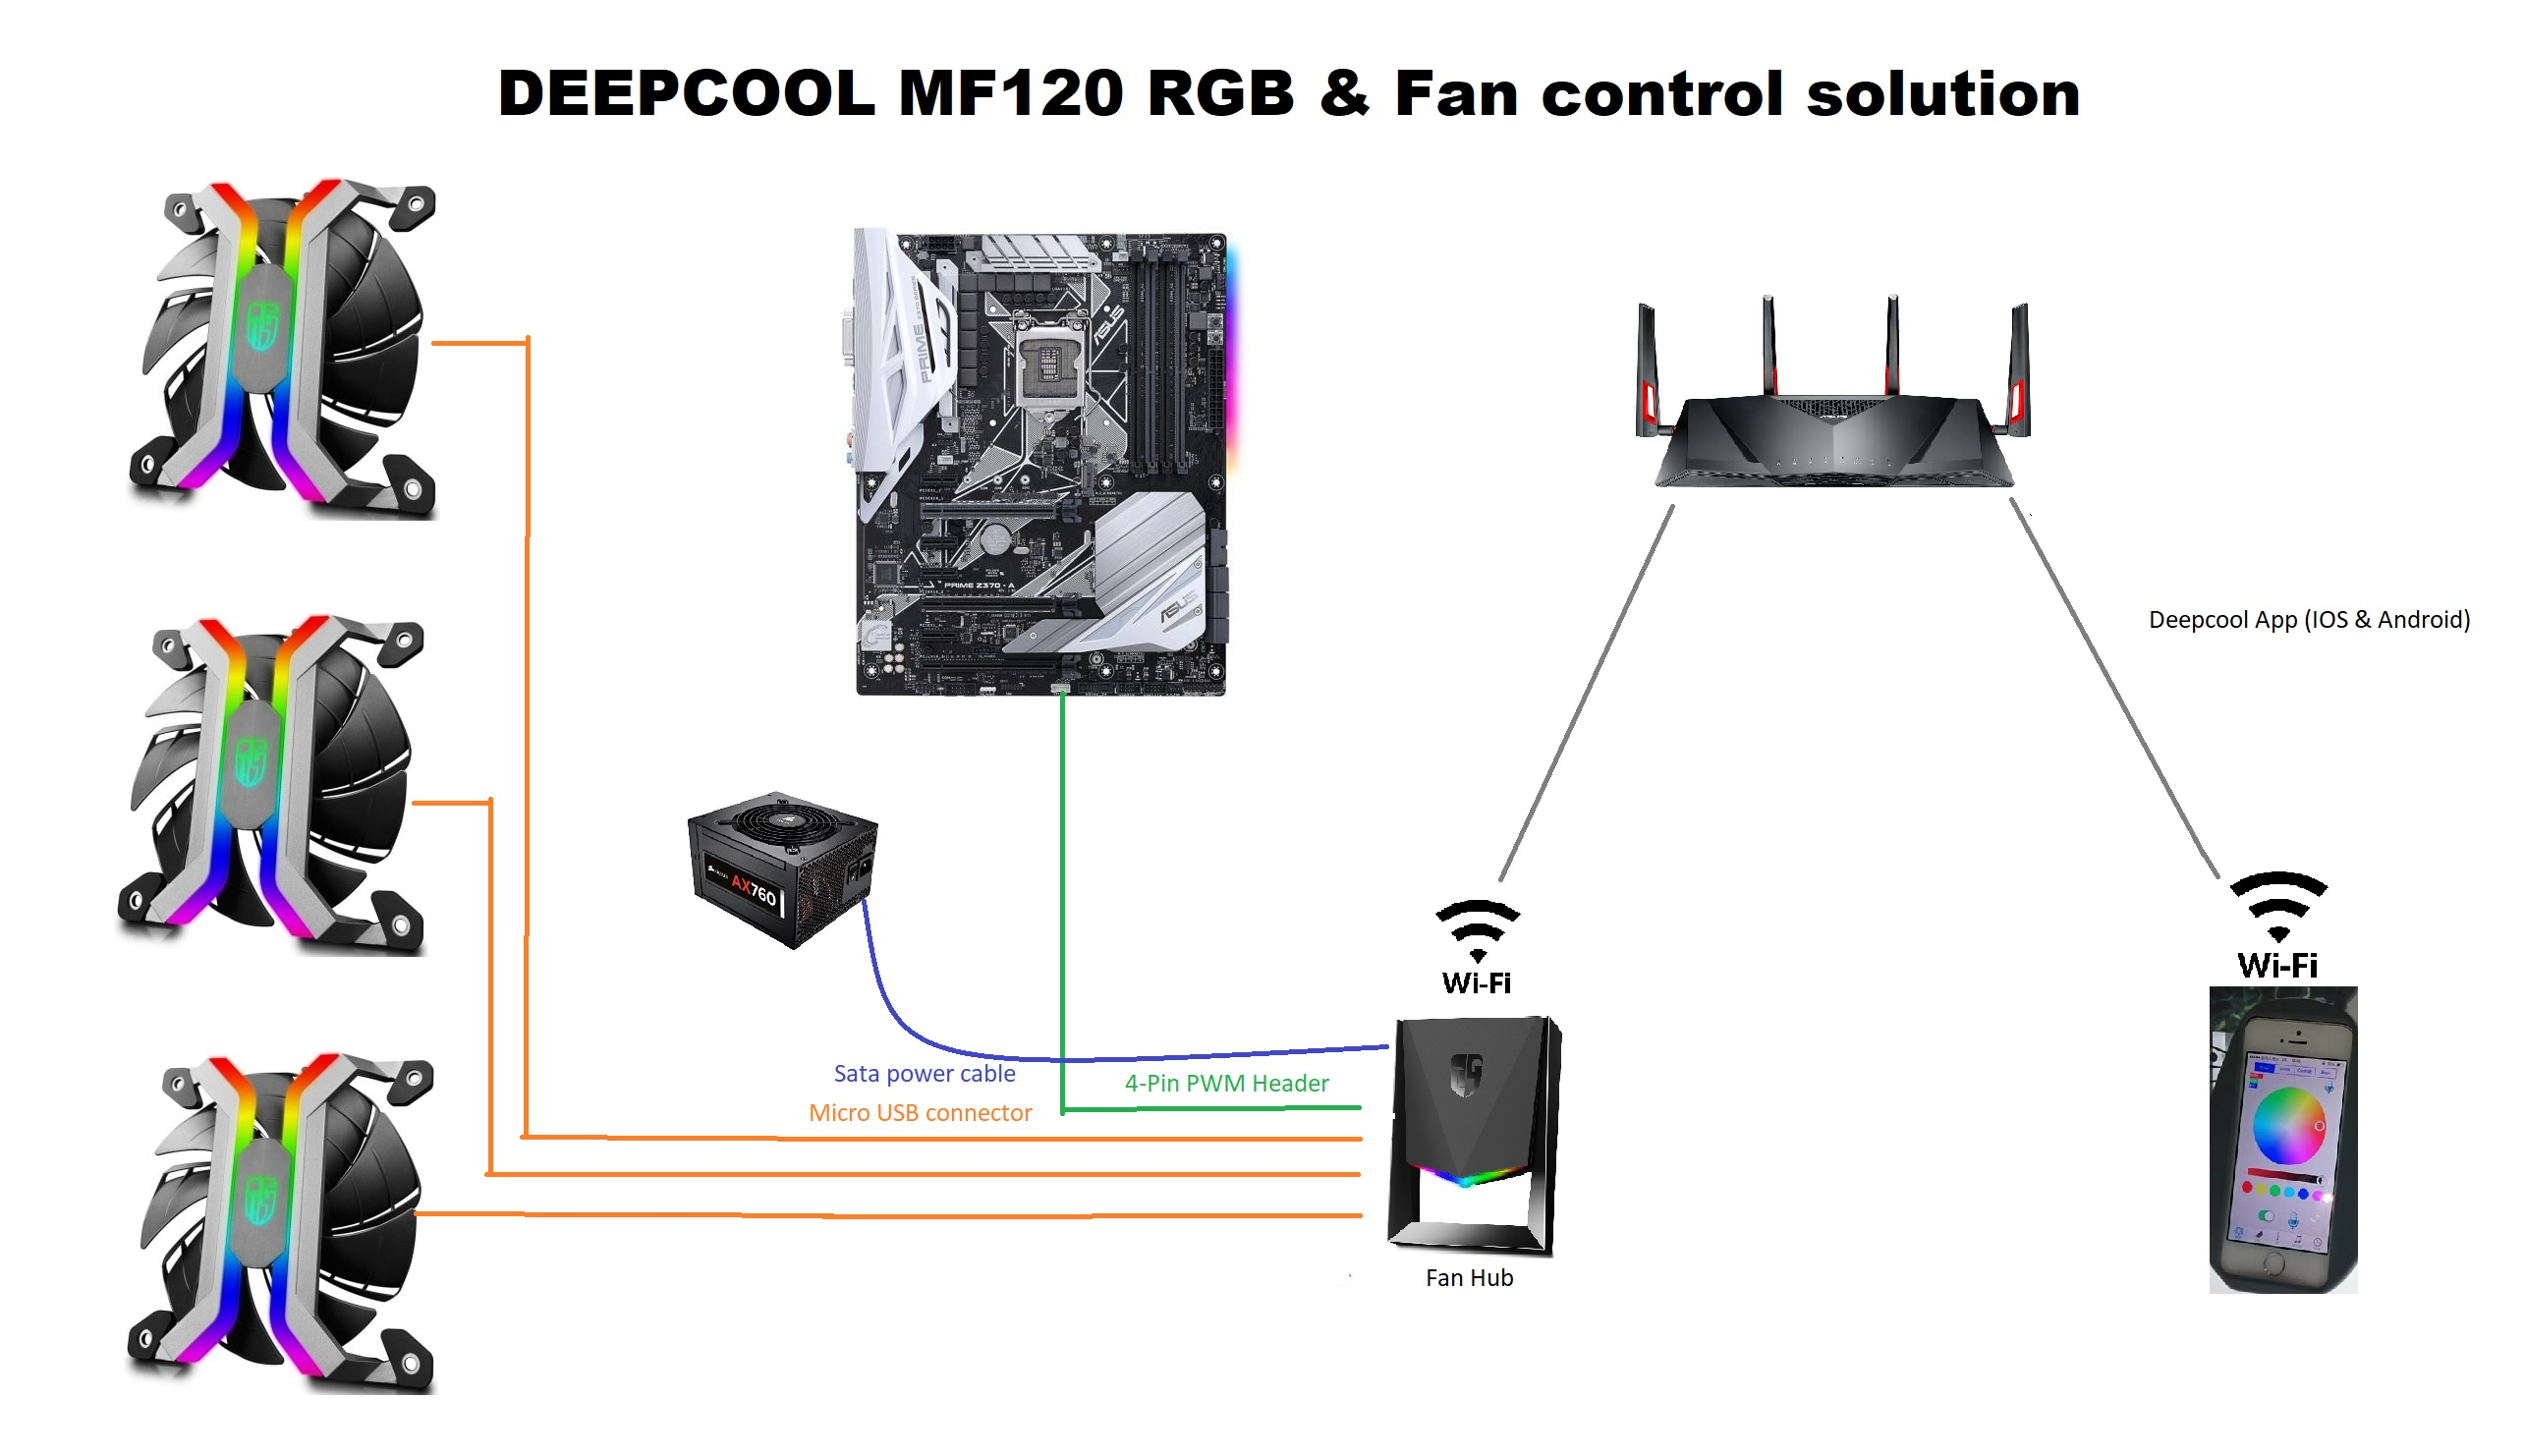 ULTIMATE Guide to Fan RPM & RGB Ecosystems - Guides and Tutorials